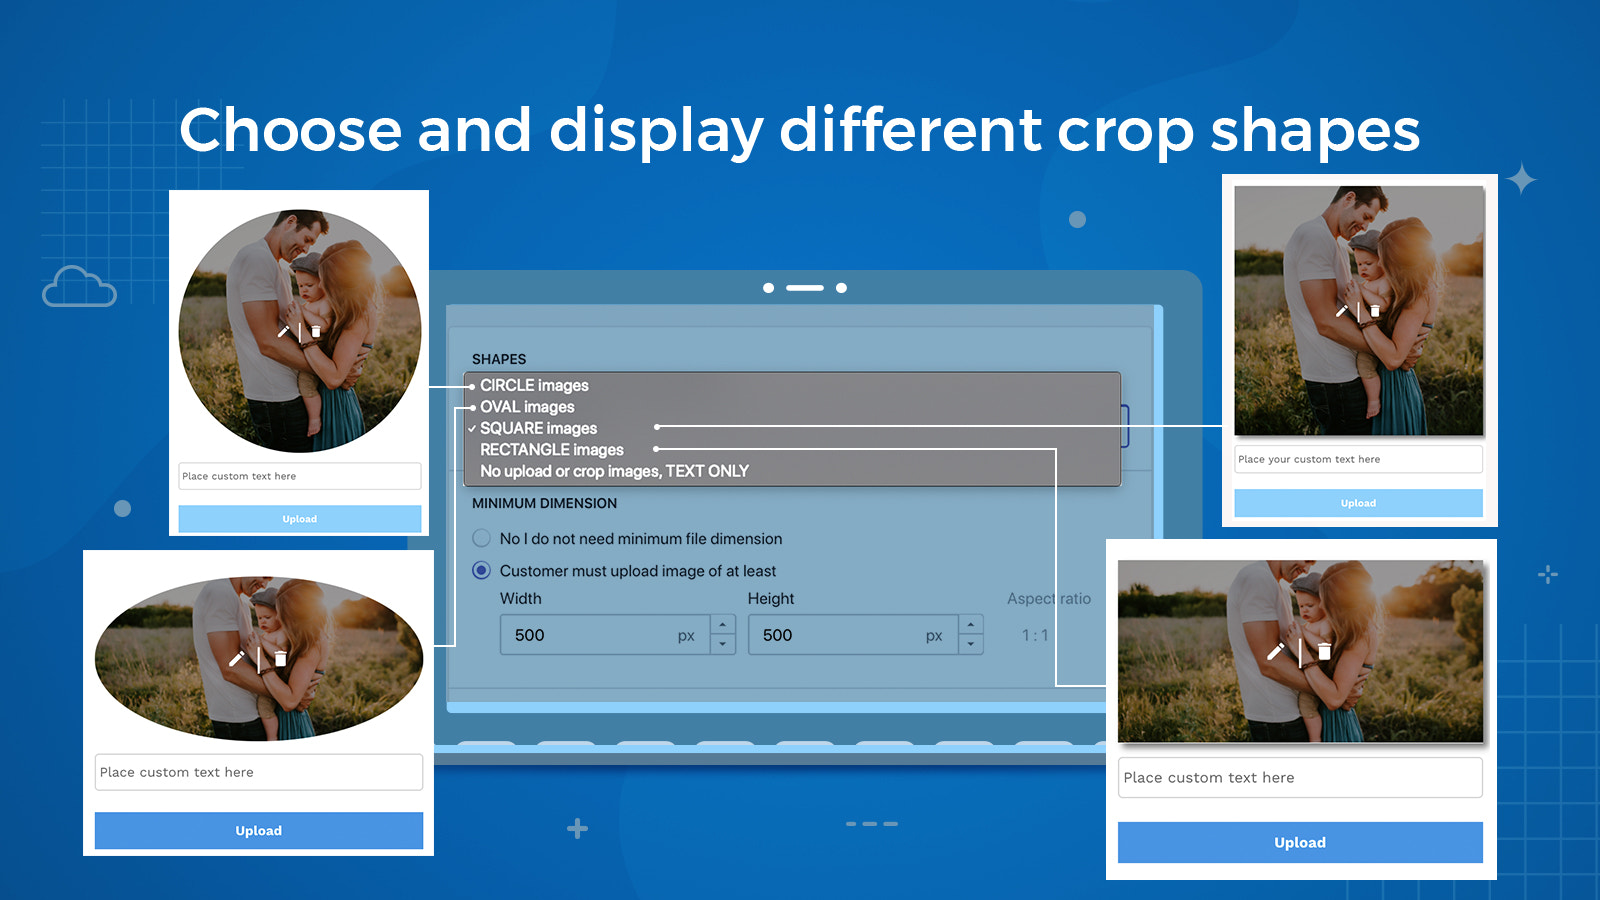 App setting, choose different image upload shapes to crop